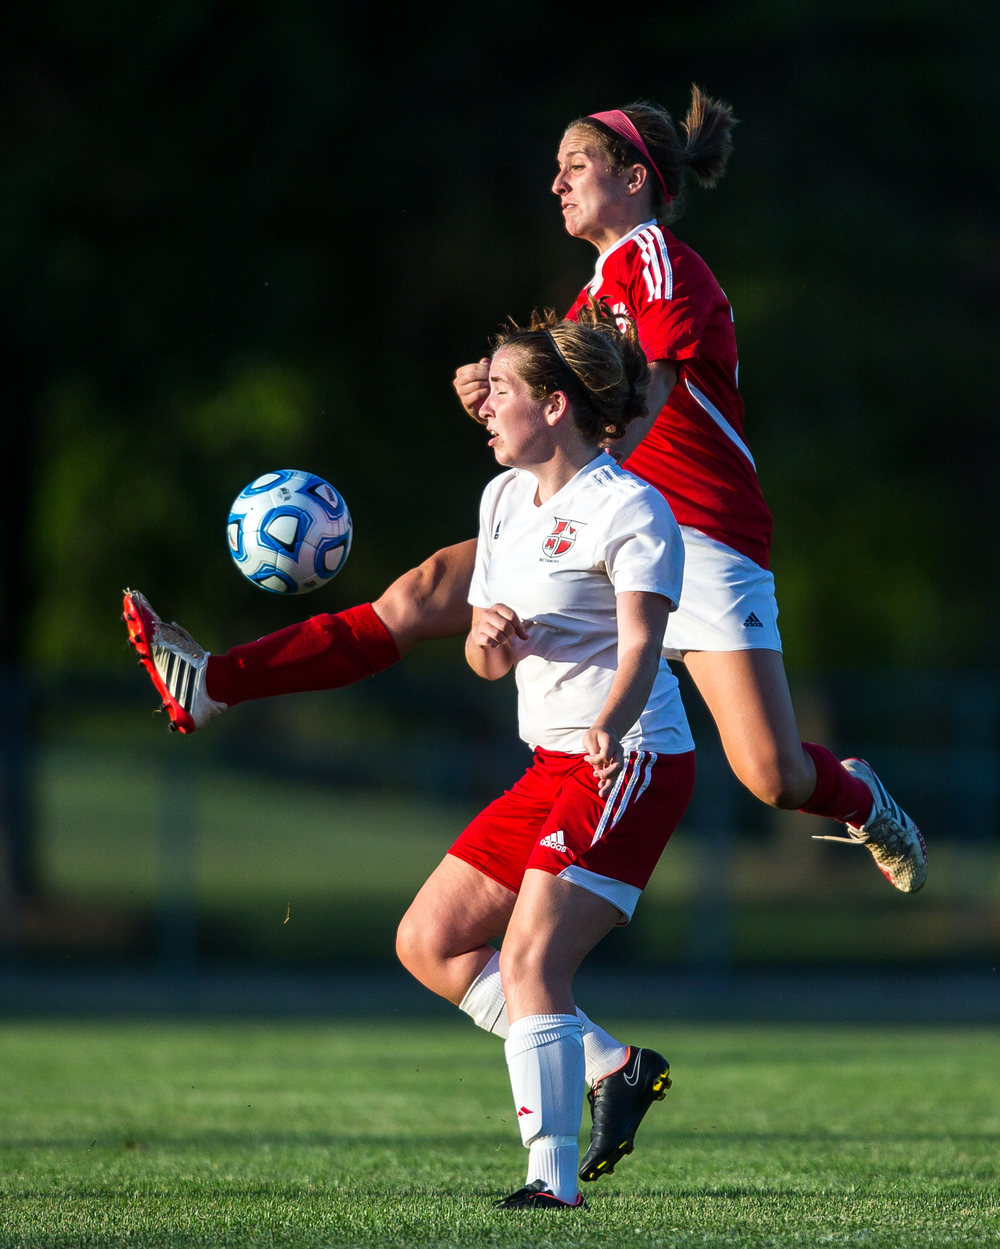 Glenwood's Blaire Marker (20) tries to win a ball out of the air against Metamora's Brittany Johnson (5) in the second half during the Class 2A Springfield Supersectional at Kiwanis Stadium, Tuesday, June 2, 2015, in Springfield, Ill. Justin L. Fowler/The State Journal-Register